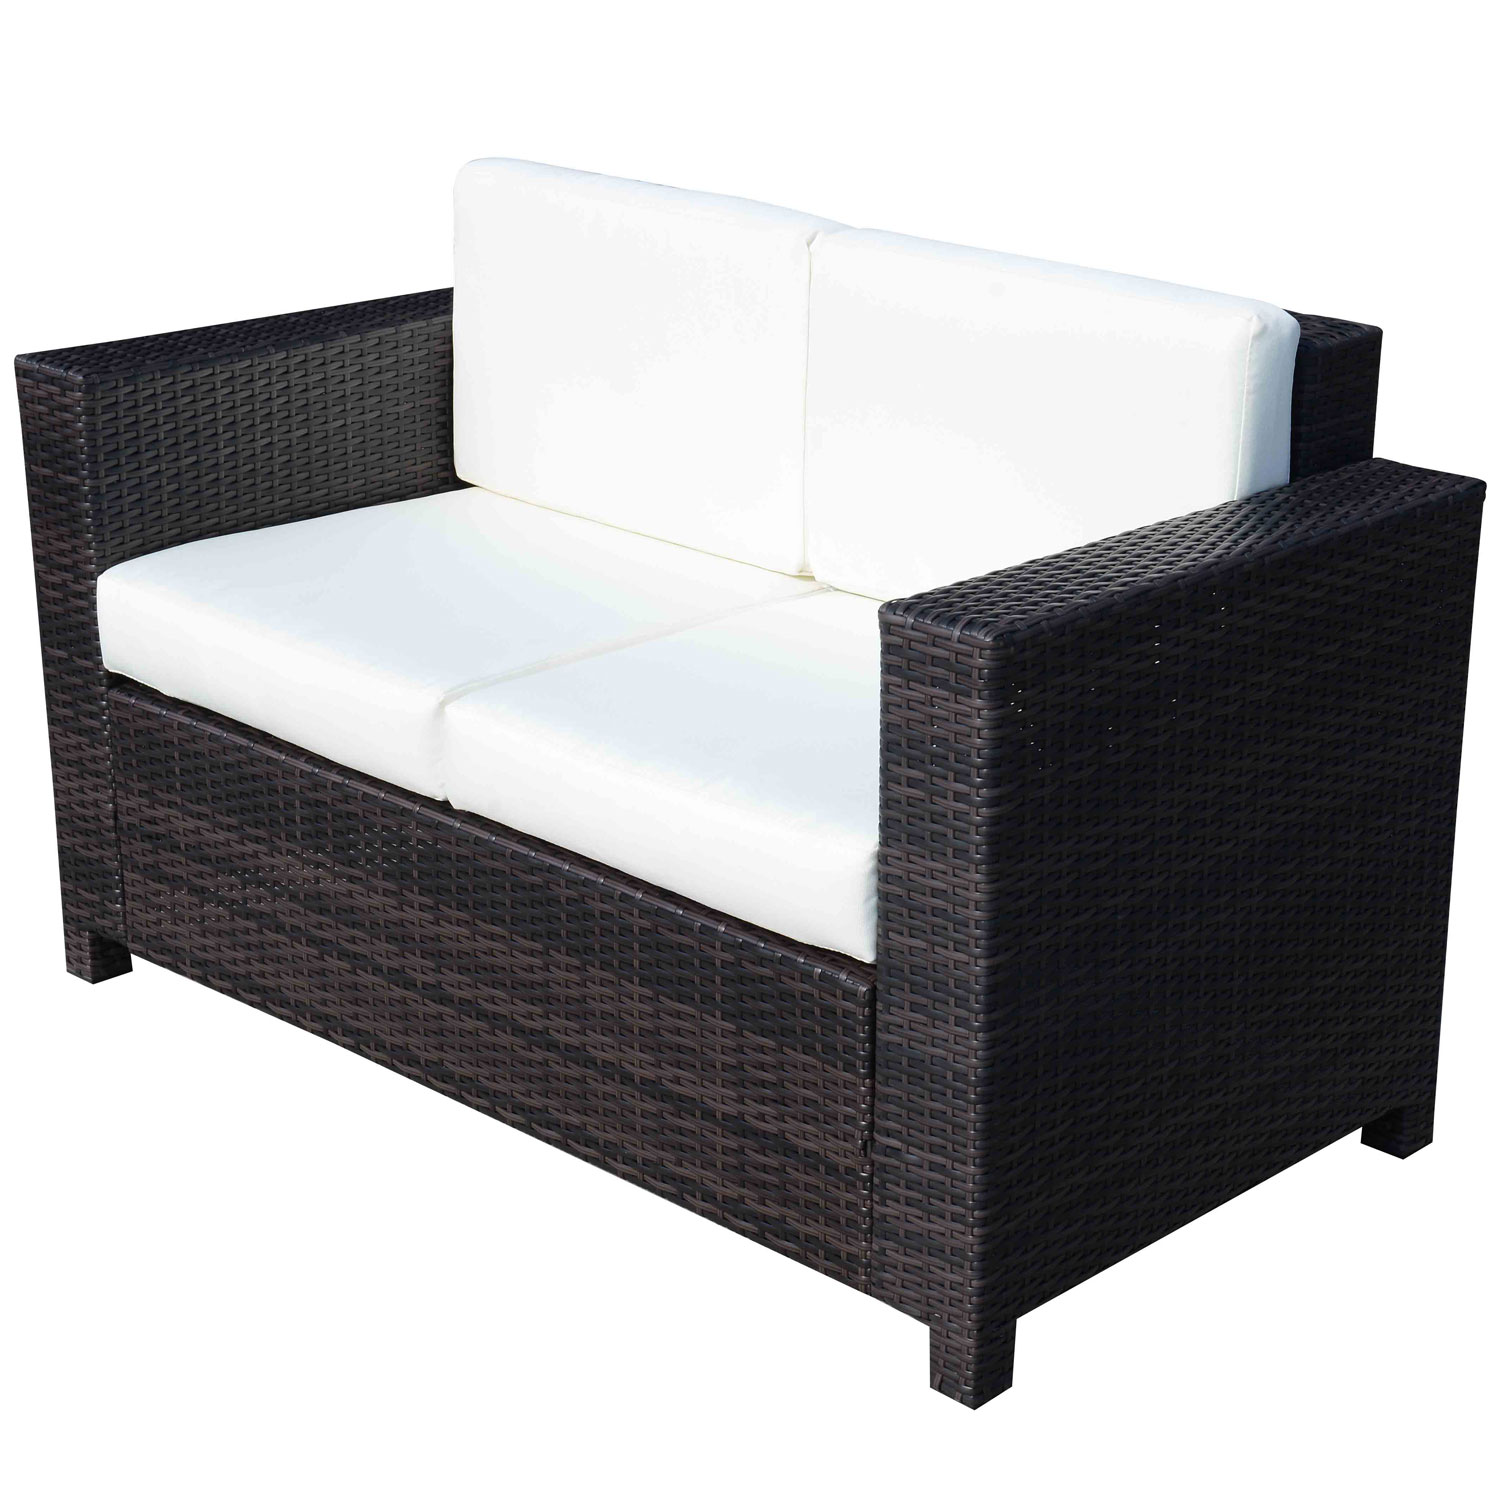 Image of £164.99 Outsunny Rattan Sofa, 2-Seater-Brown / Outdoor Garden Patio Wicker Weave Furniture Table Sofa Chair Mixed Brown 860-031BN 5056029885123